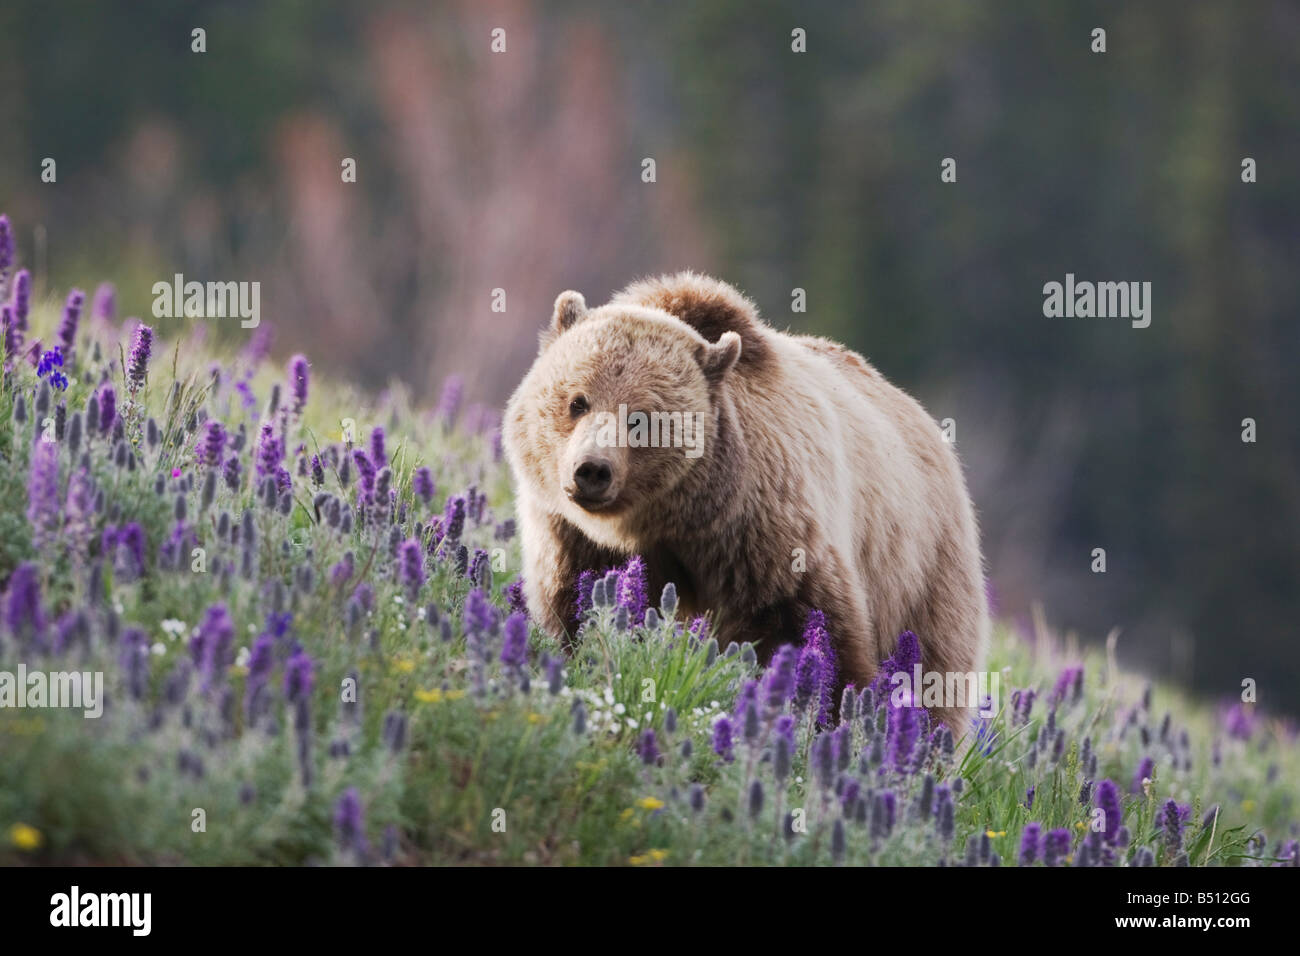 Grizzly Bear Ursus arctos horribilis adult in Purple Fringe Phacelia sericea flowers Yellowstone National Park Wyoming Stock Photo